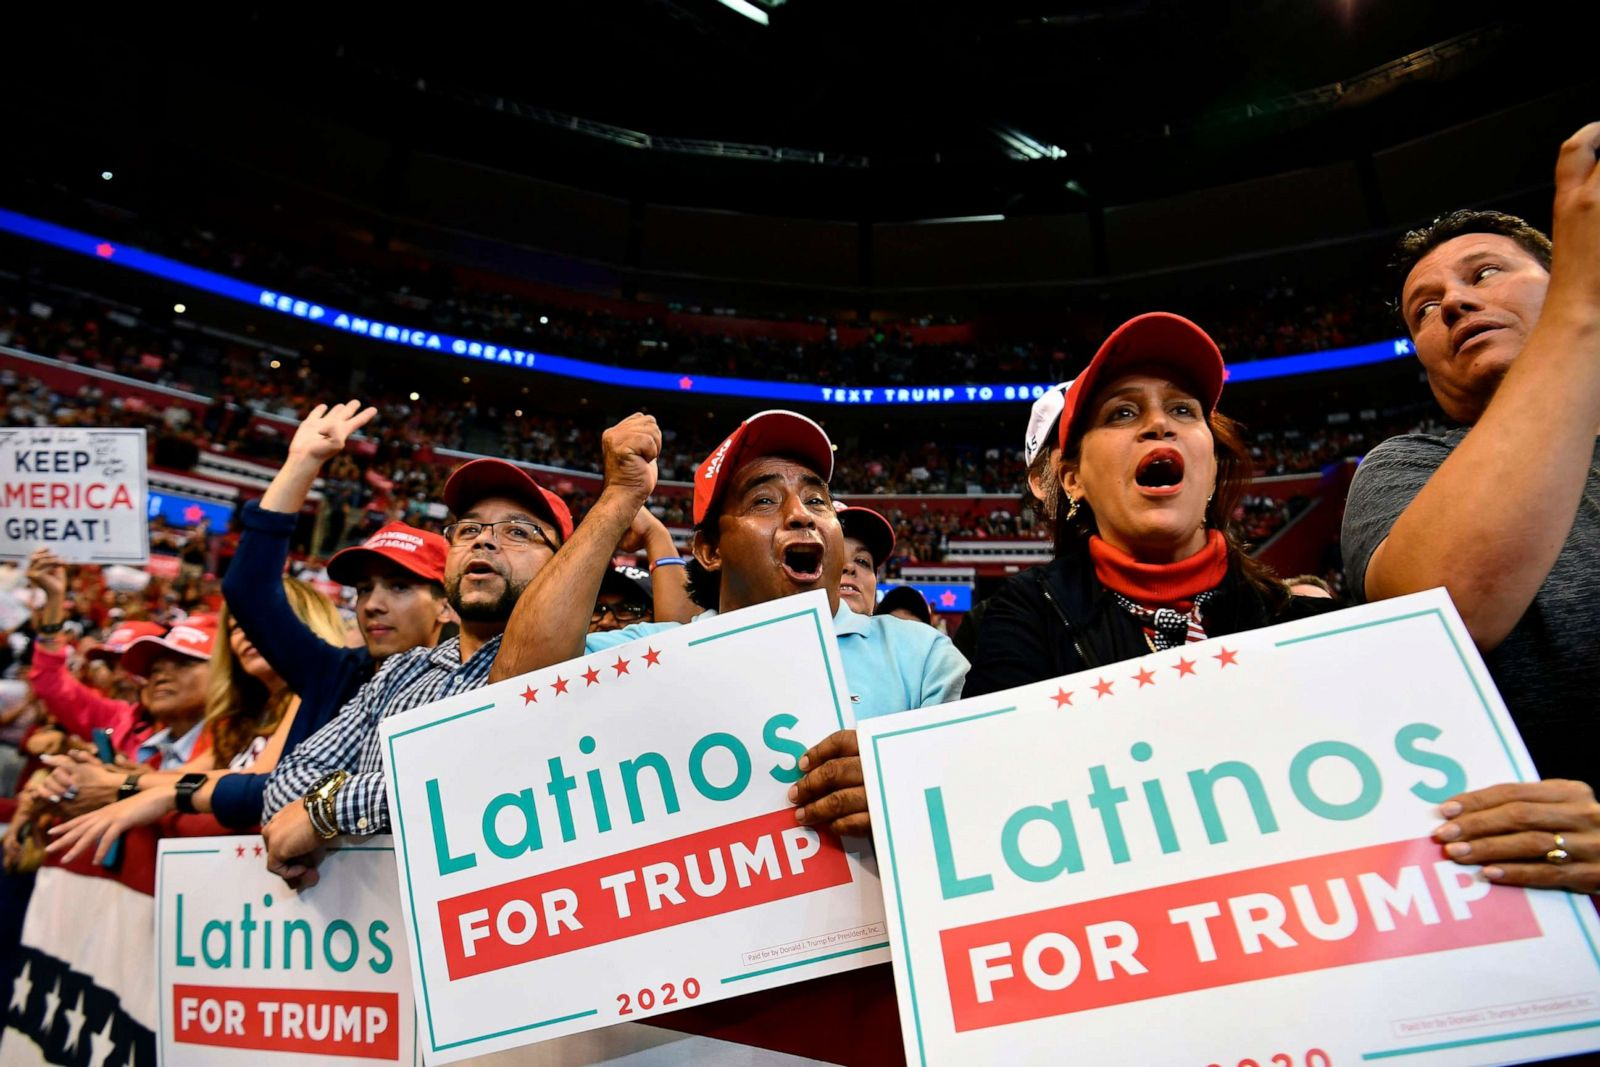 Latino's For Trump